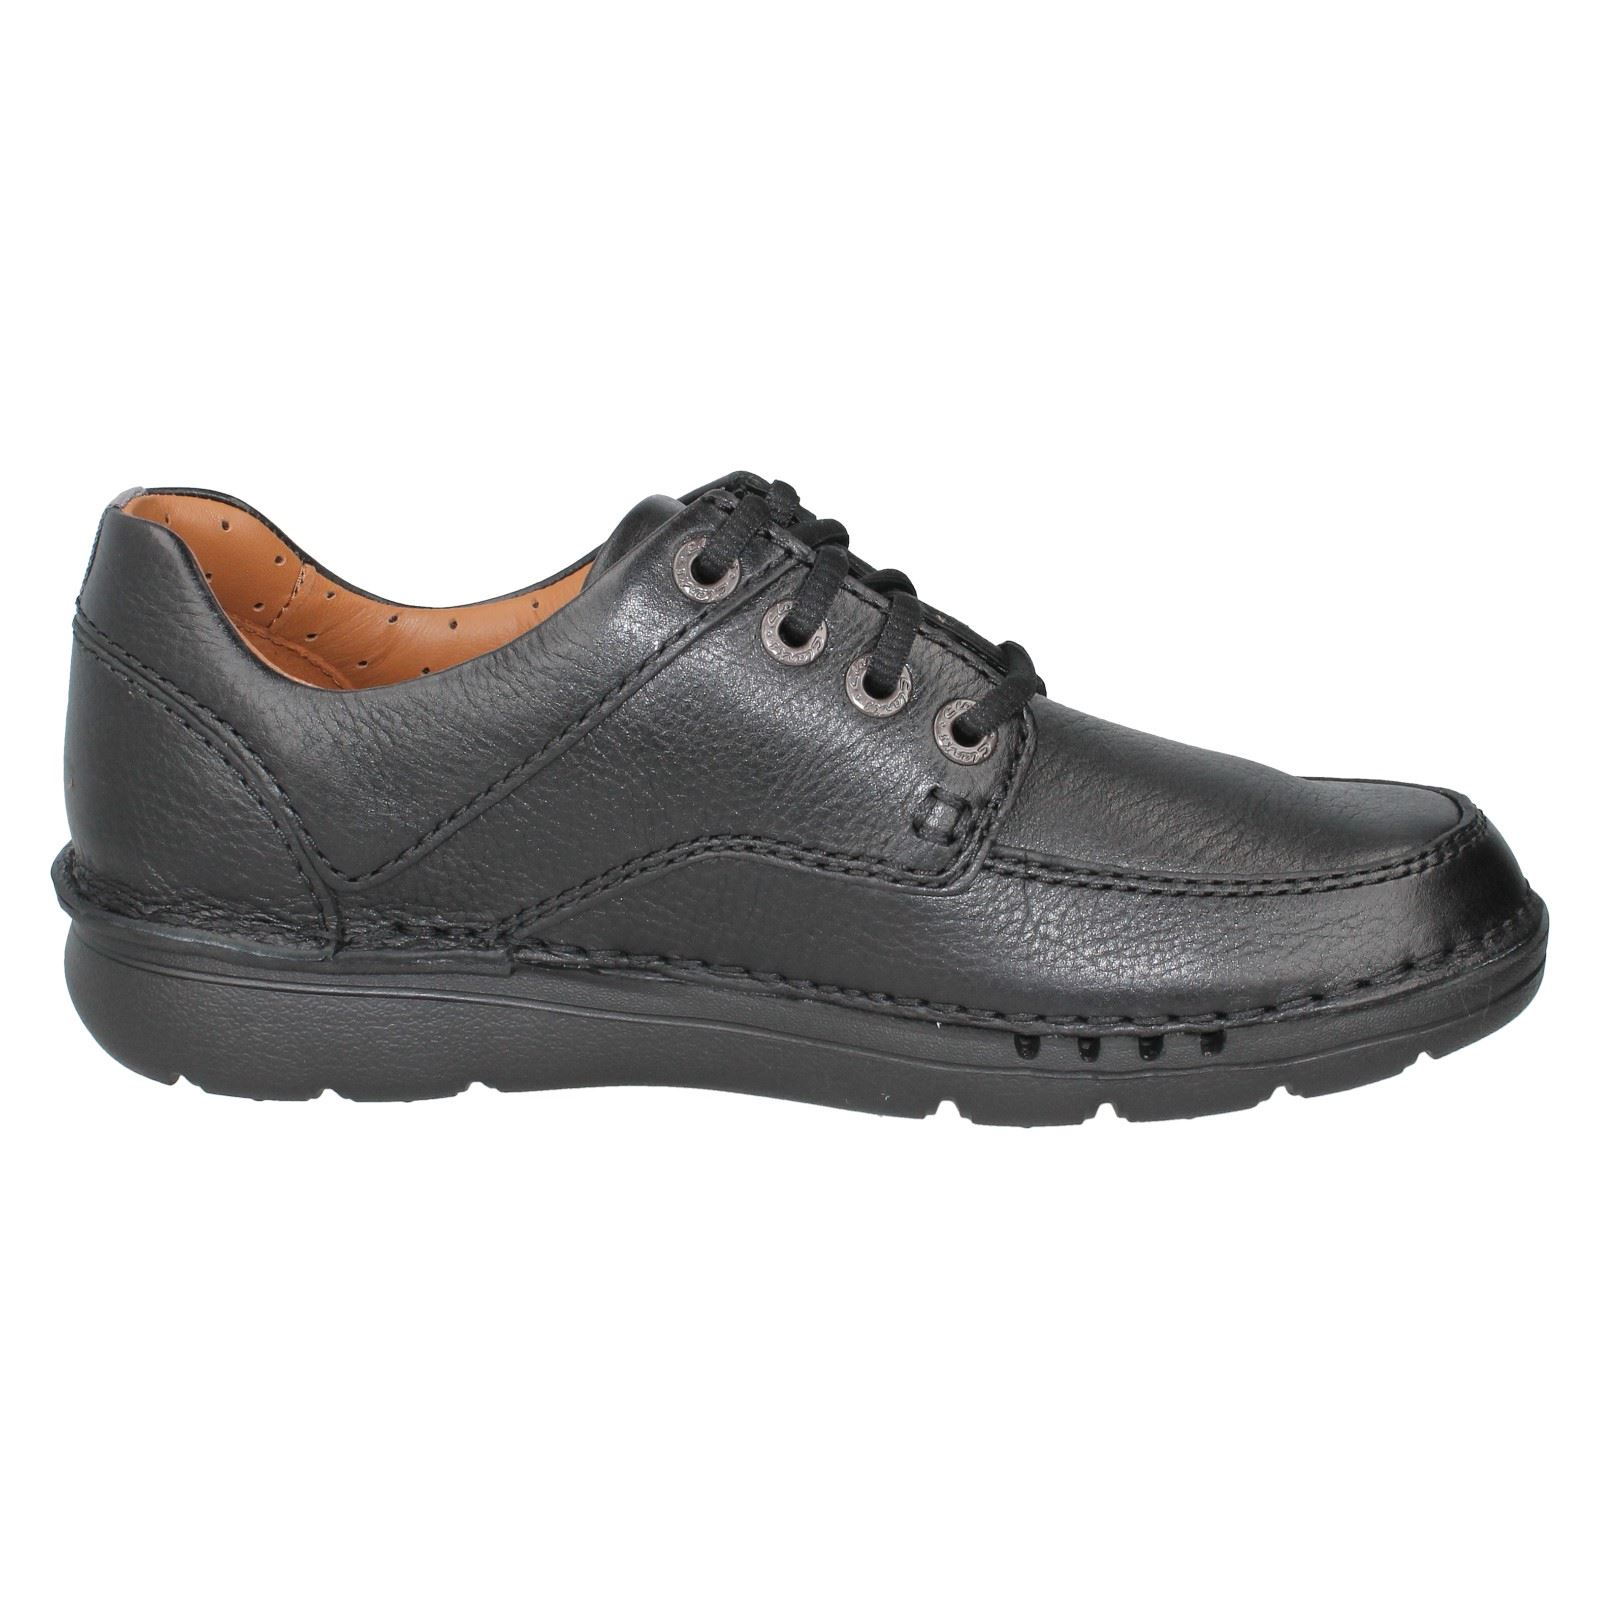 Mens UnstructuROT by Clarks Leder Casual Lace Up Schuhes Schuhes Schuhes Style -  Unnature Time 5b3d37